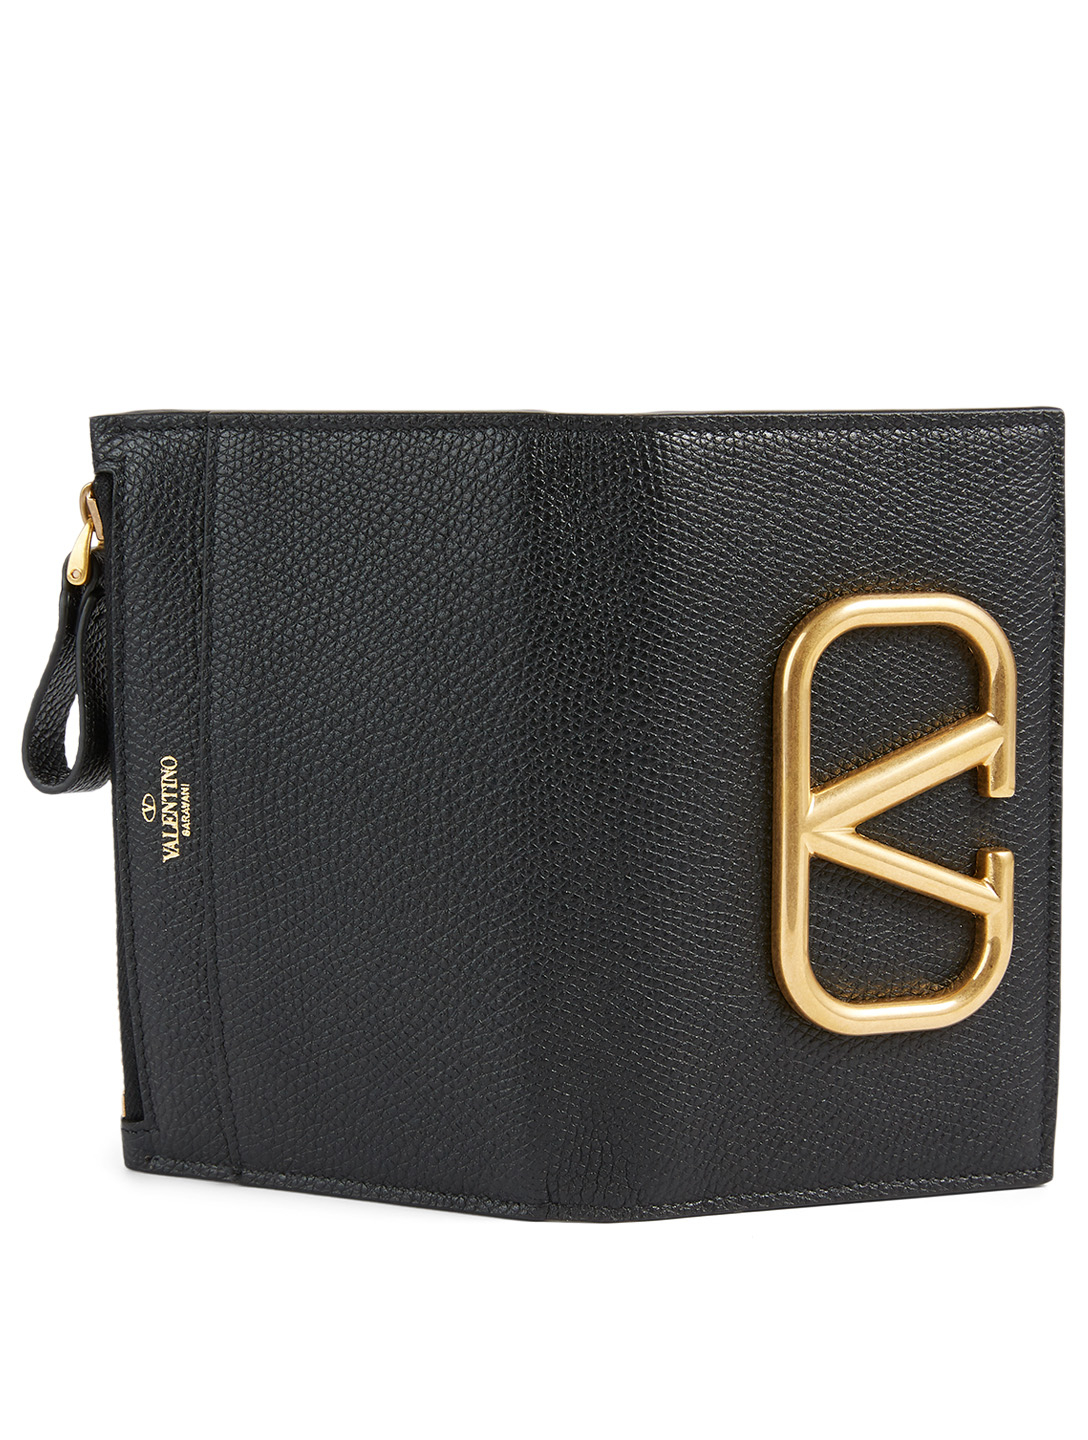 VALENTINO GARAVANI VLOGO Leather Zip Card Holder Women's Black